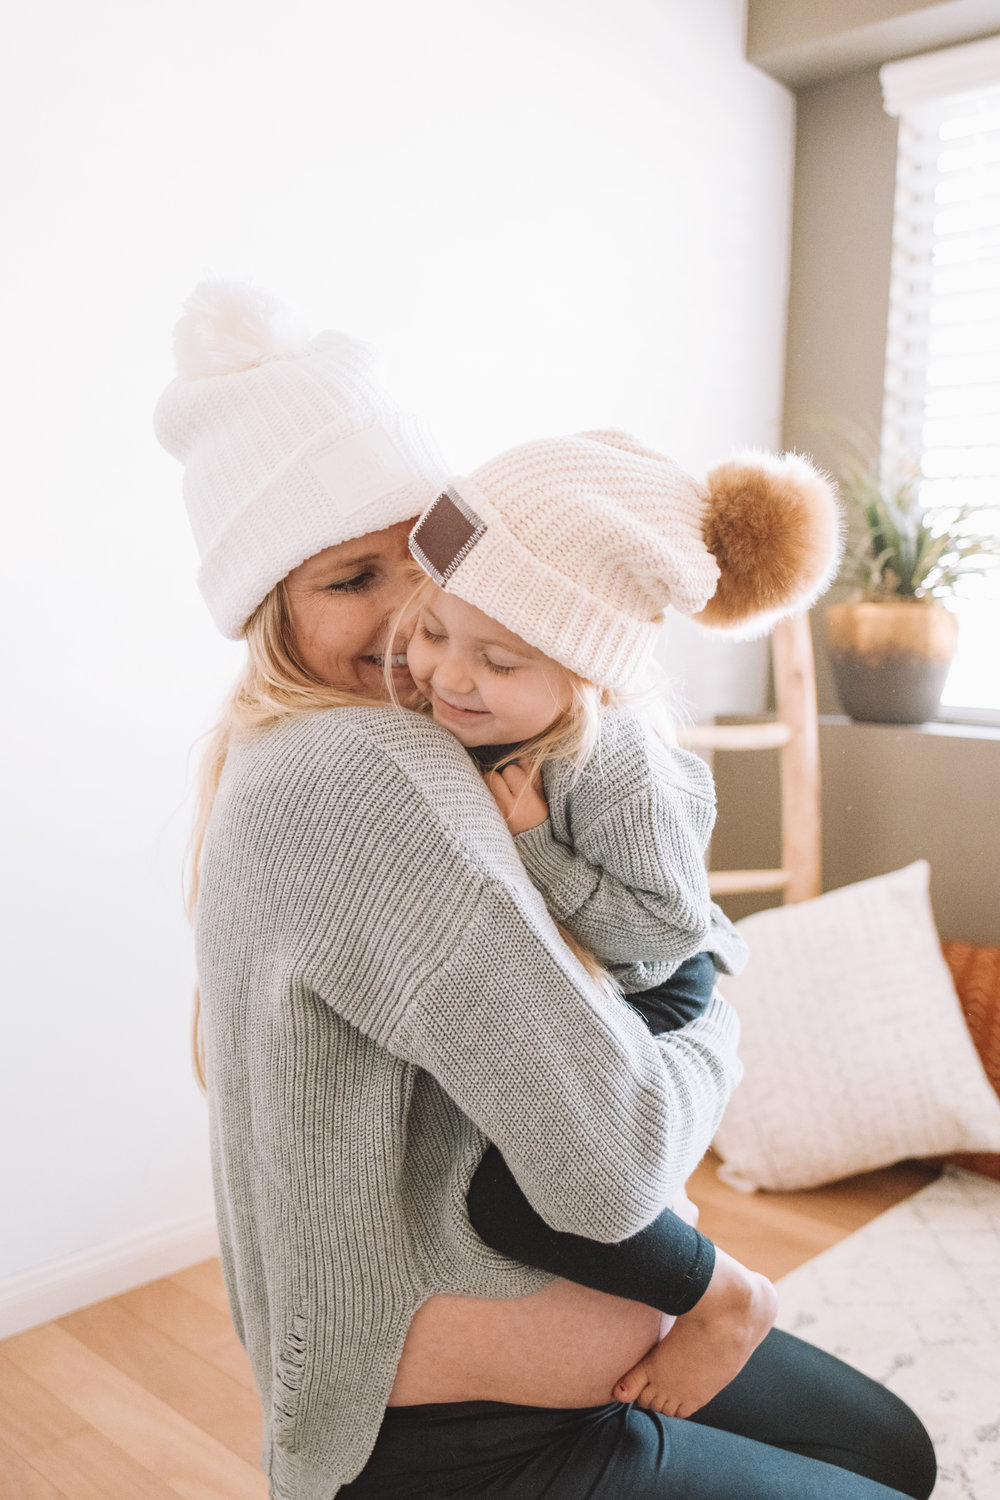 My biggest fear with my second baby - The Overwhelmed Mommy Blogger